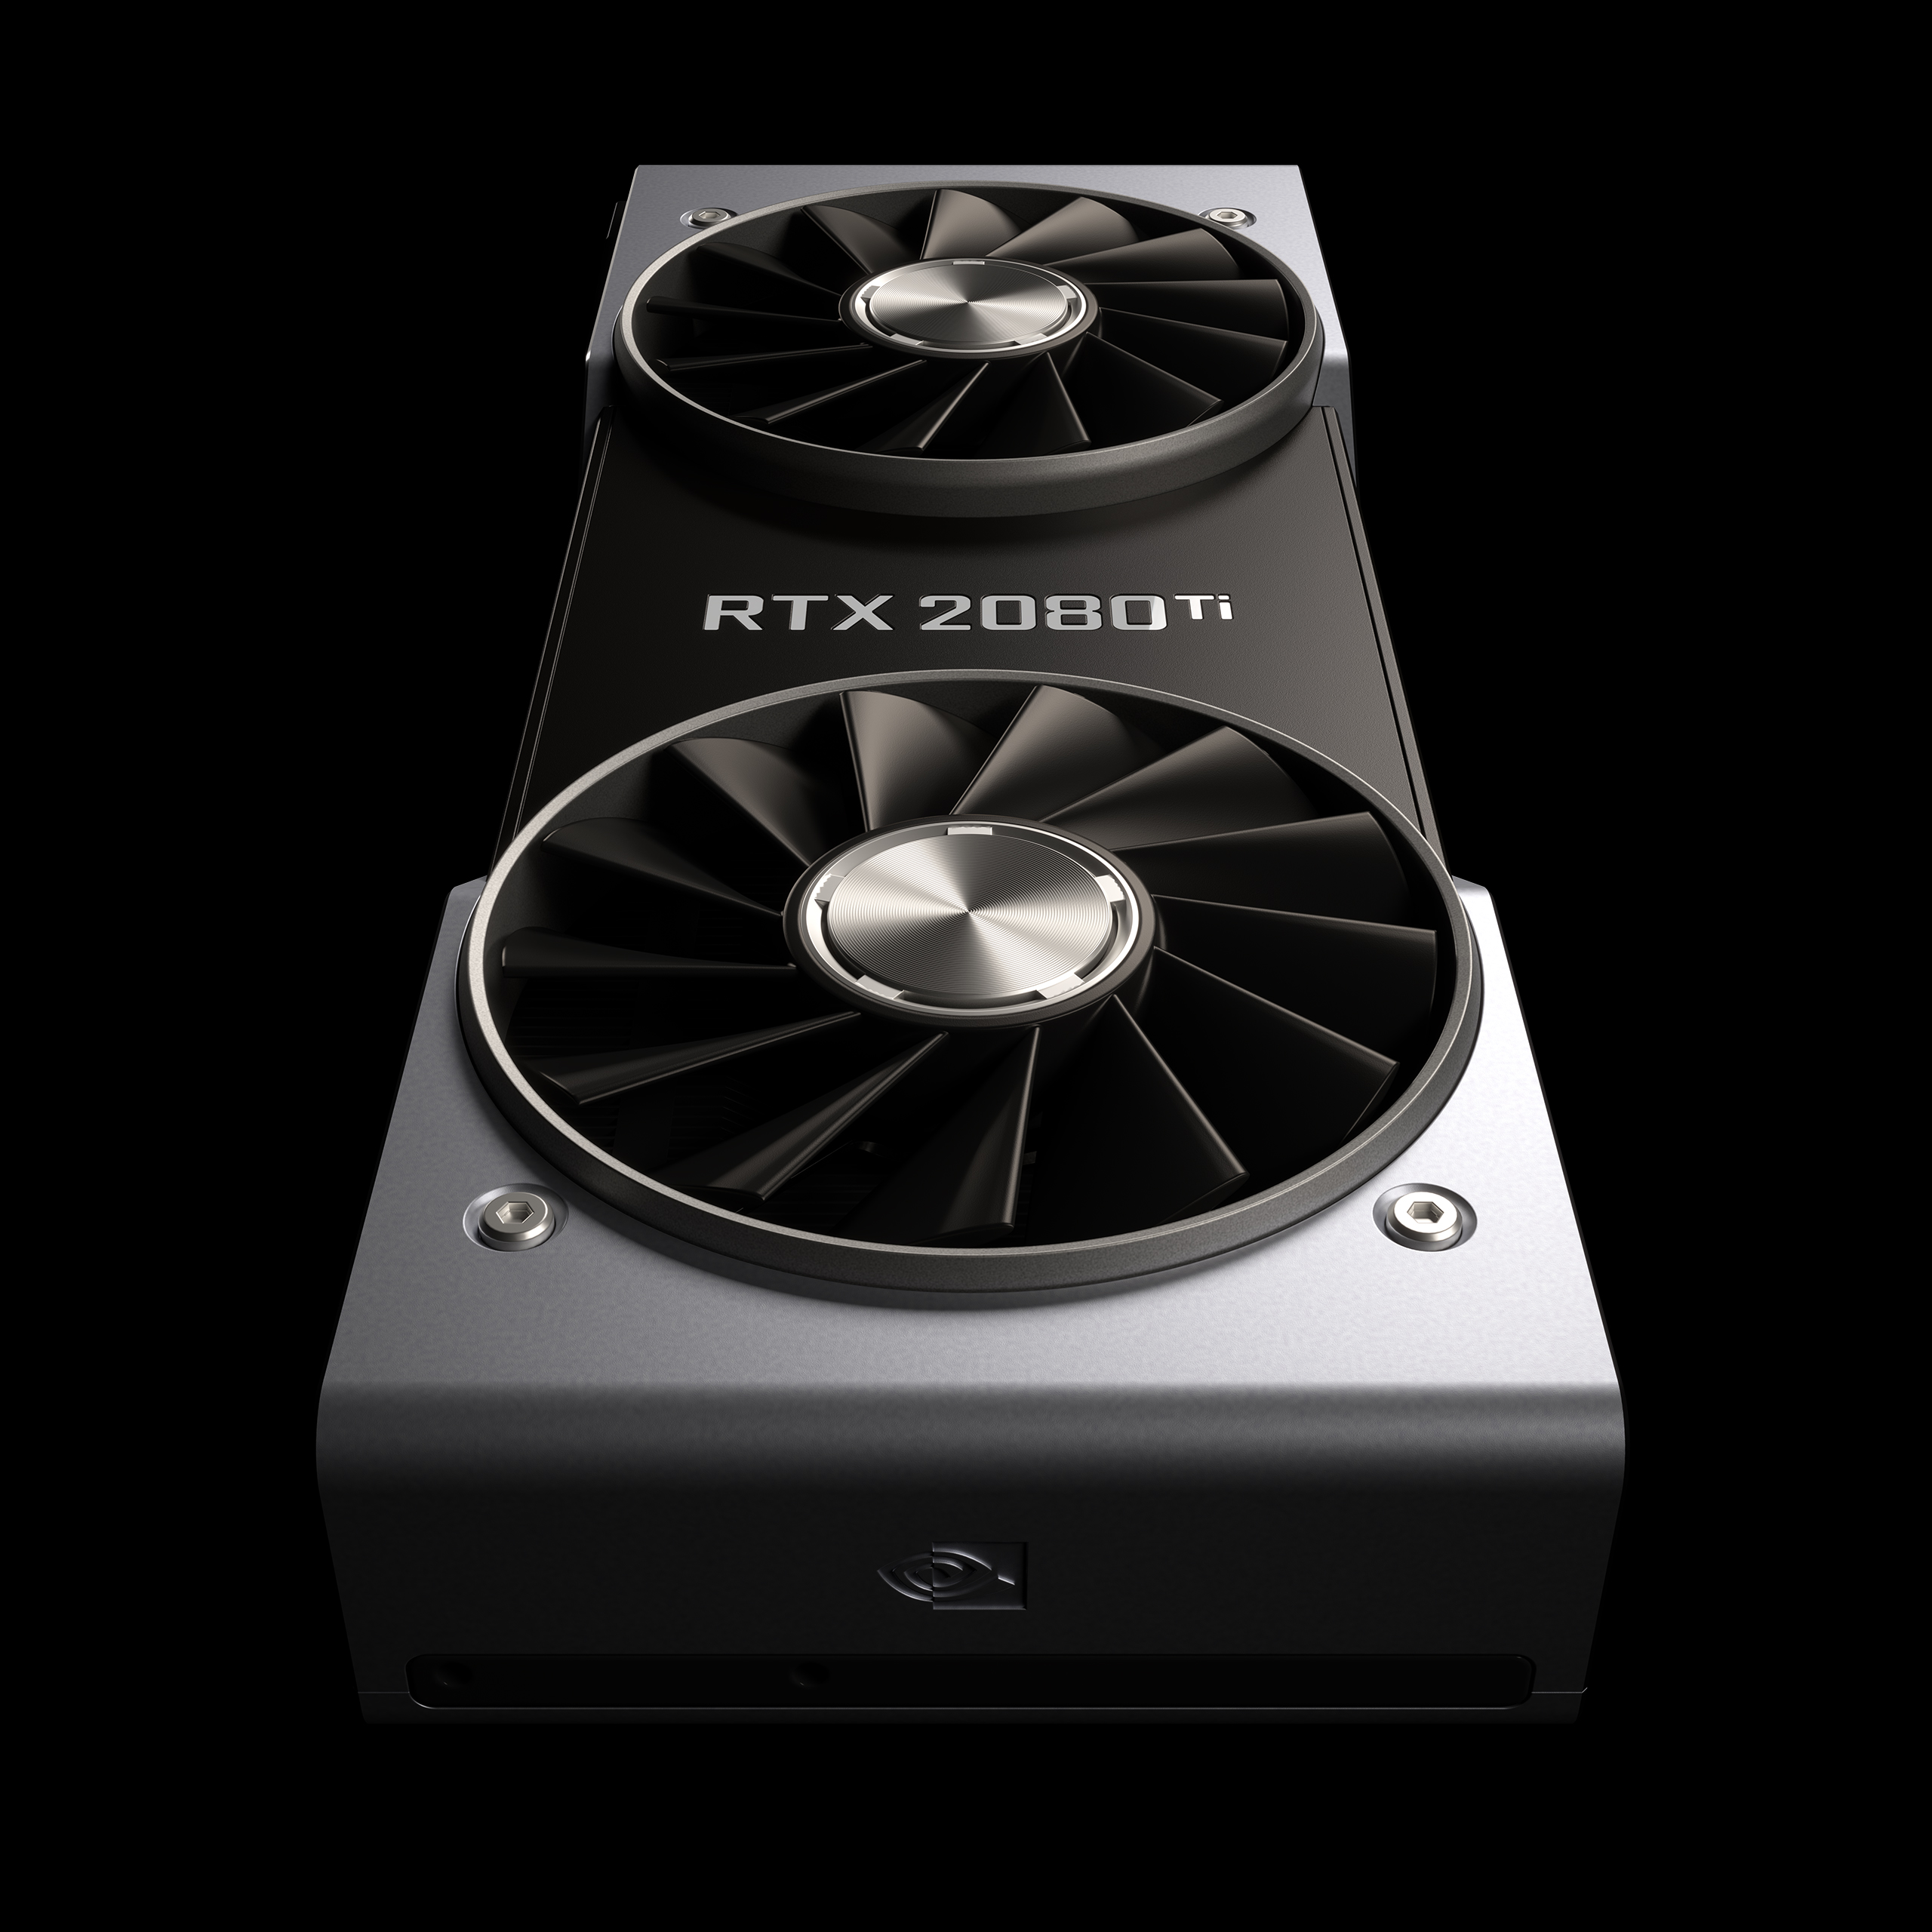 Mining in 2018, Do New Nvidia Cards Make it Worthwhile